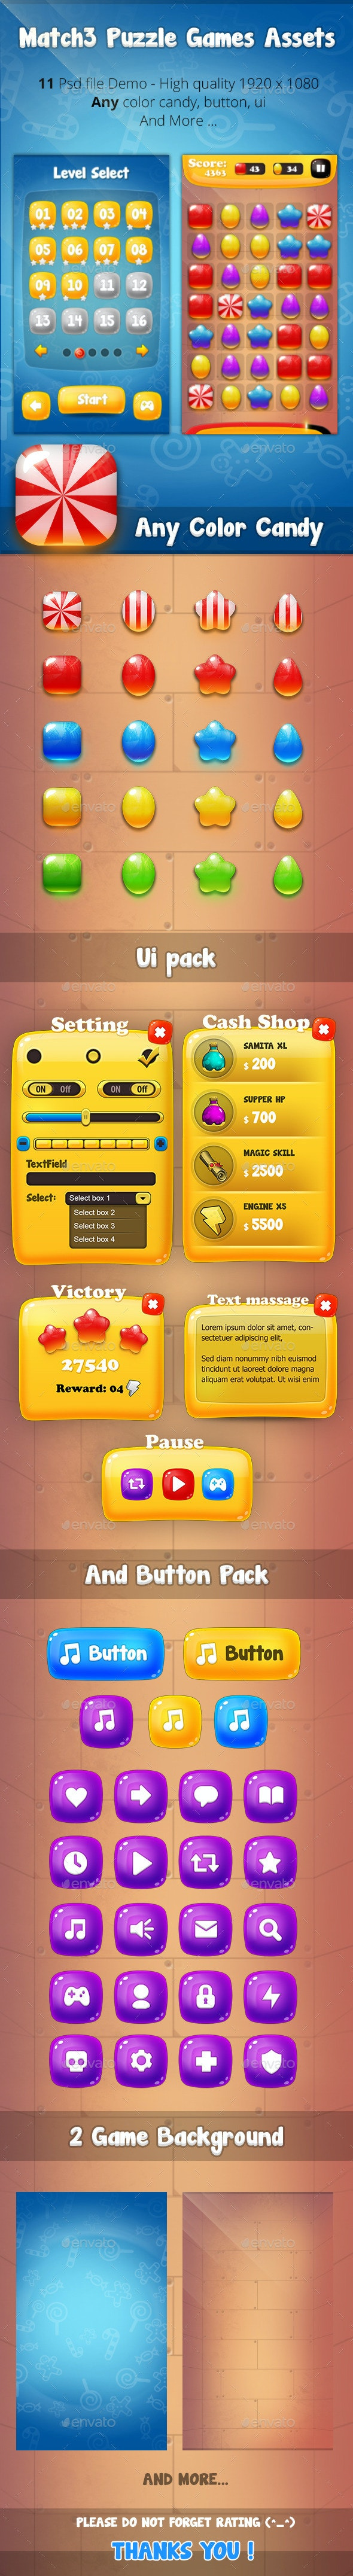 Match3 Puzzle Games Assets V1 - Game Kits Game Assets